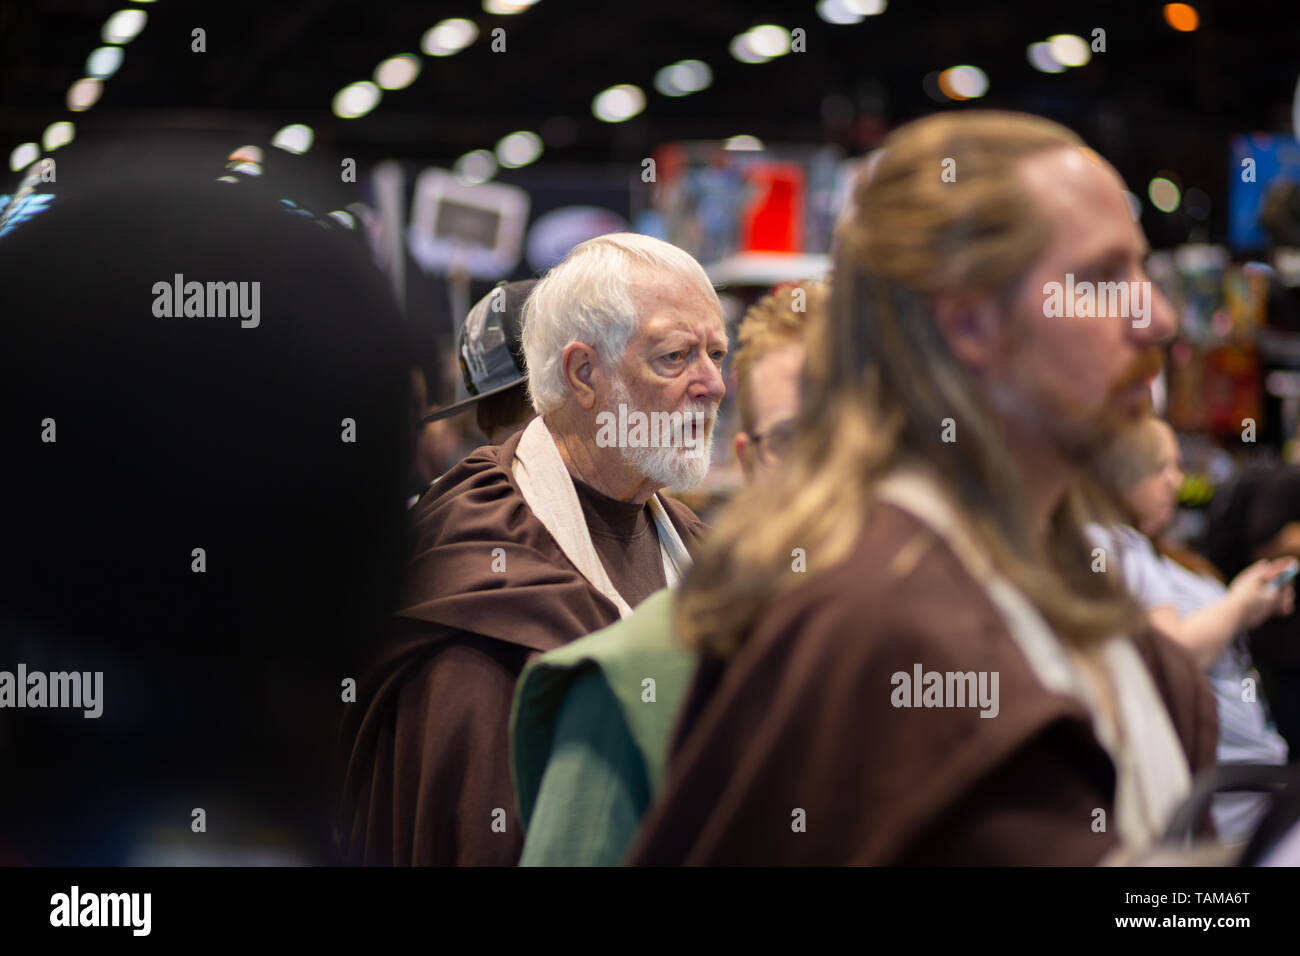 Men dressed in costume as Obi-Wan Kenobi and Qui-Gon Jinn at Star Wars Celebration 2019 - Chicago, IL - Stock Image